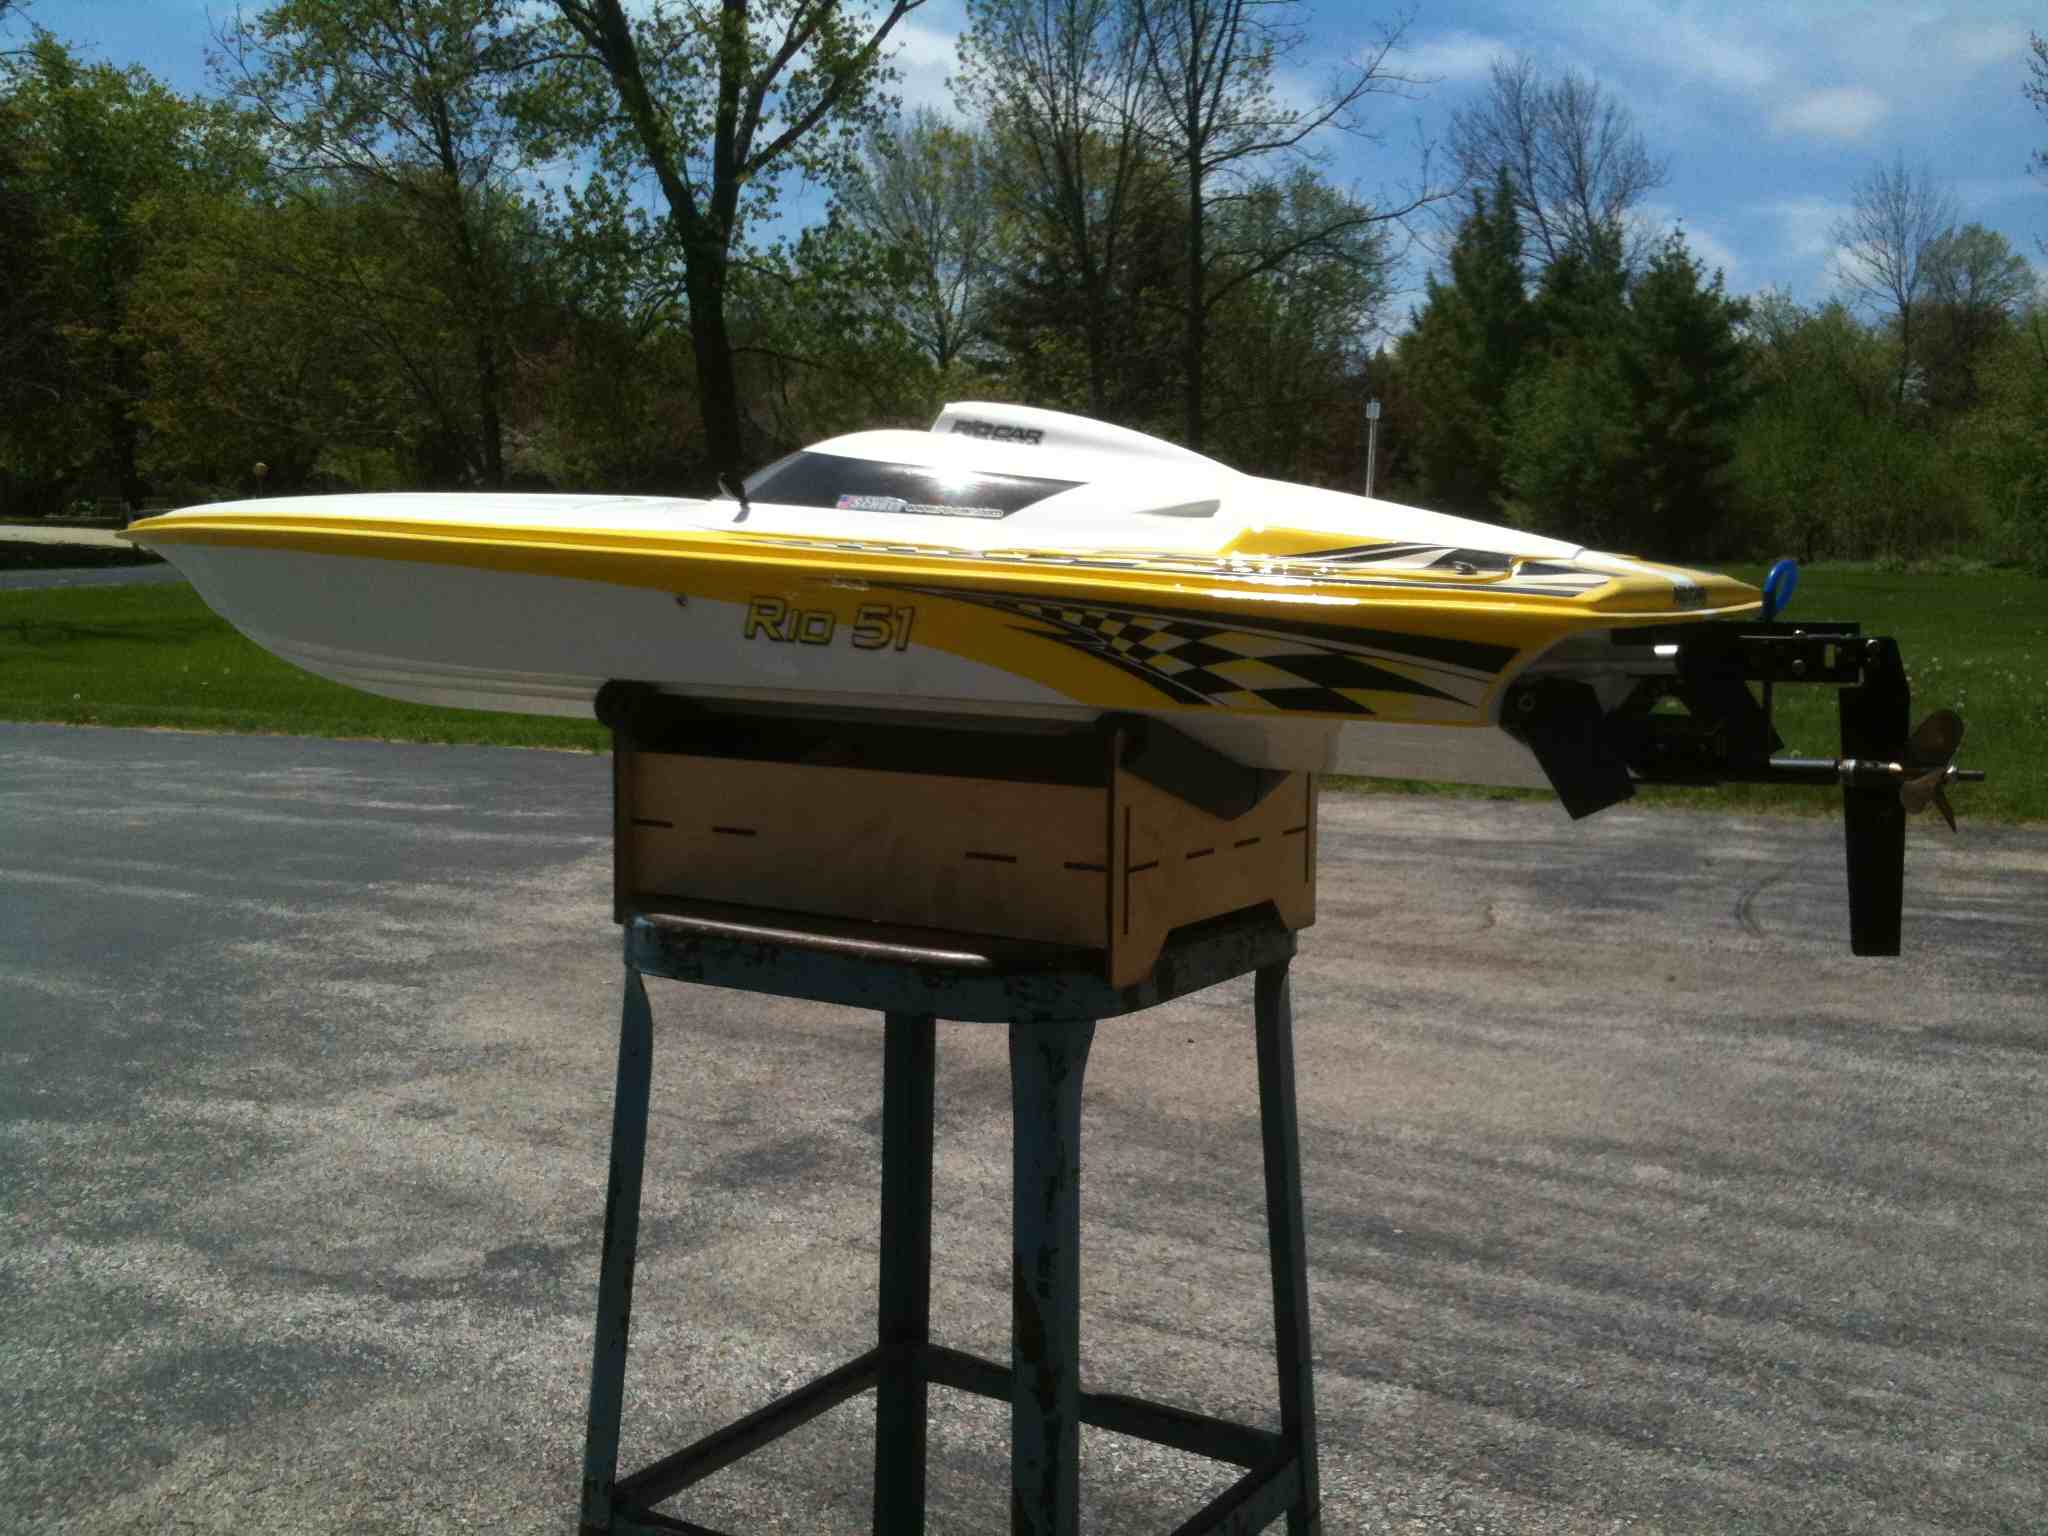 "FOR SALE: Aquacraft Rio 51"" gasoline RC Boat - R/C Tech Forums"